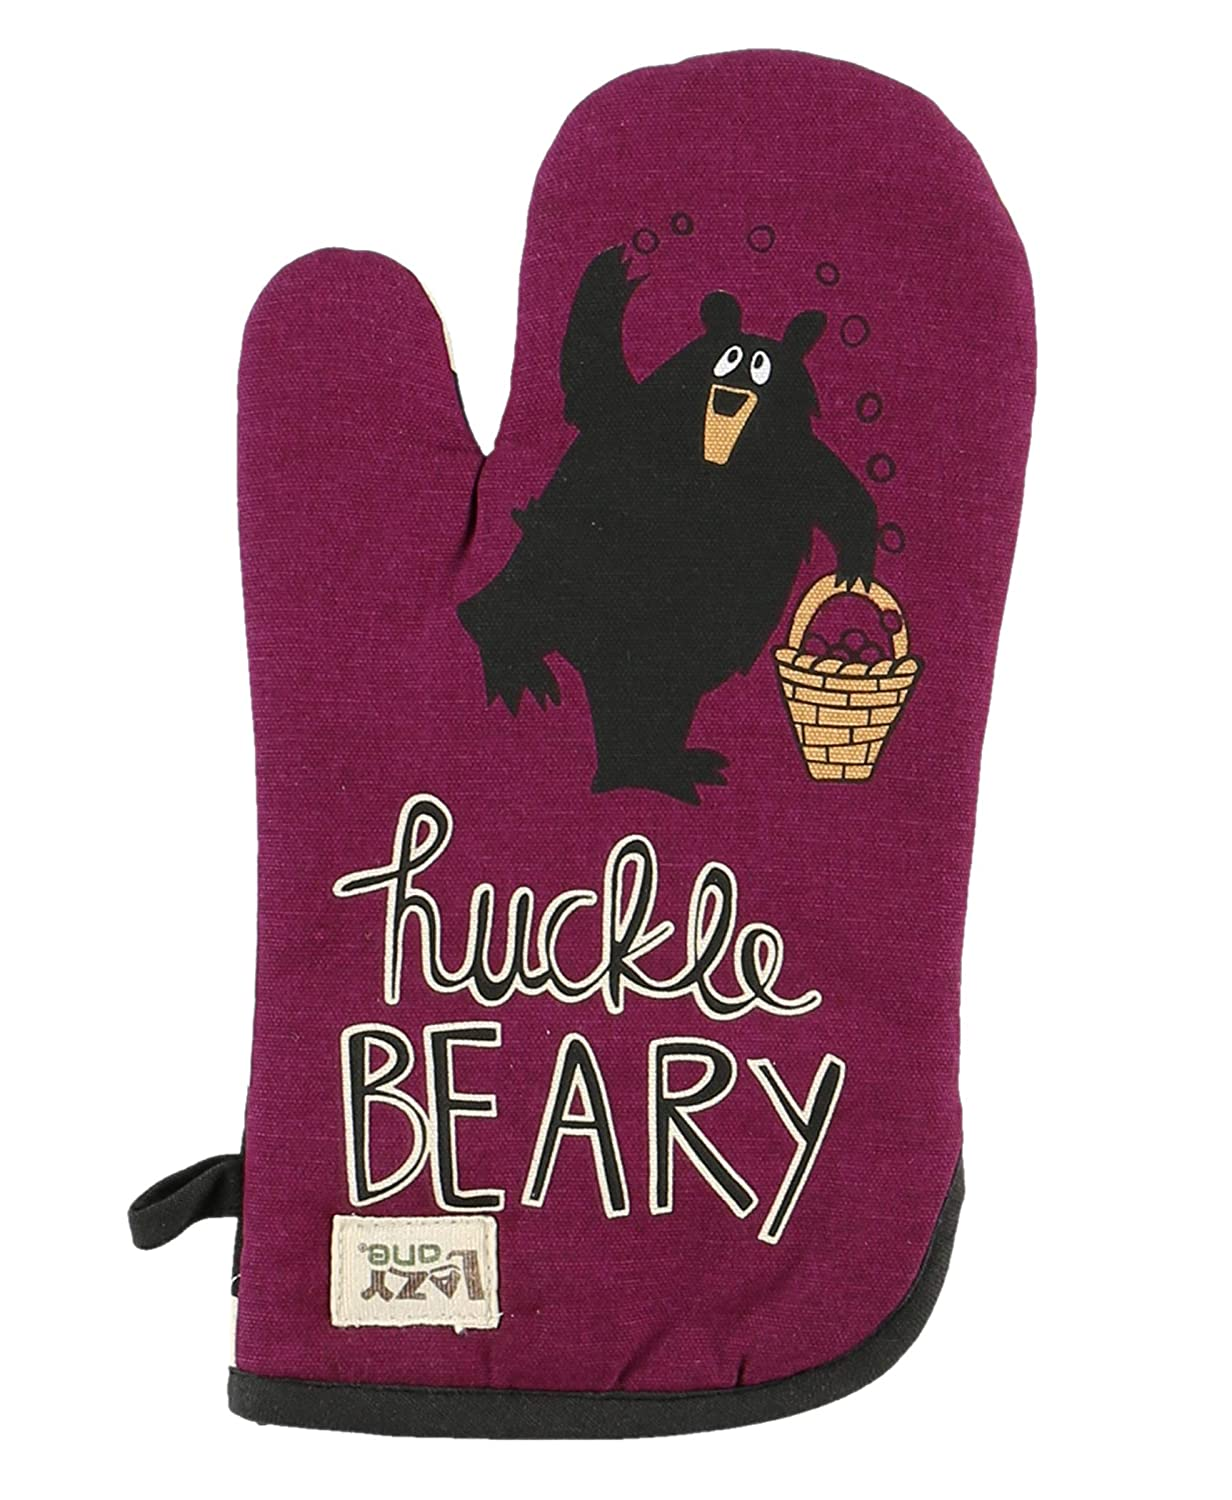 Huckleberry Durable Canvas Cottons Oven Mits by LazyOne | Cabin, Home and Kitchen Animal Gifts (ONE Size)